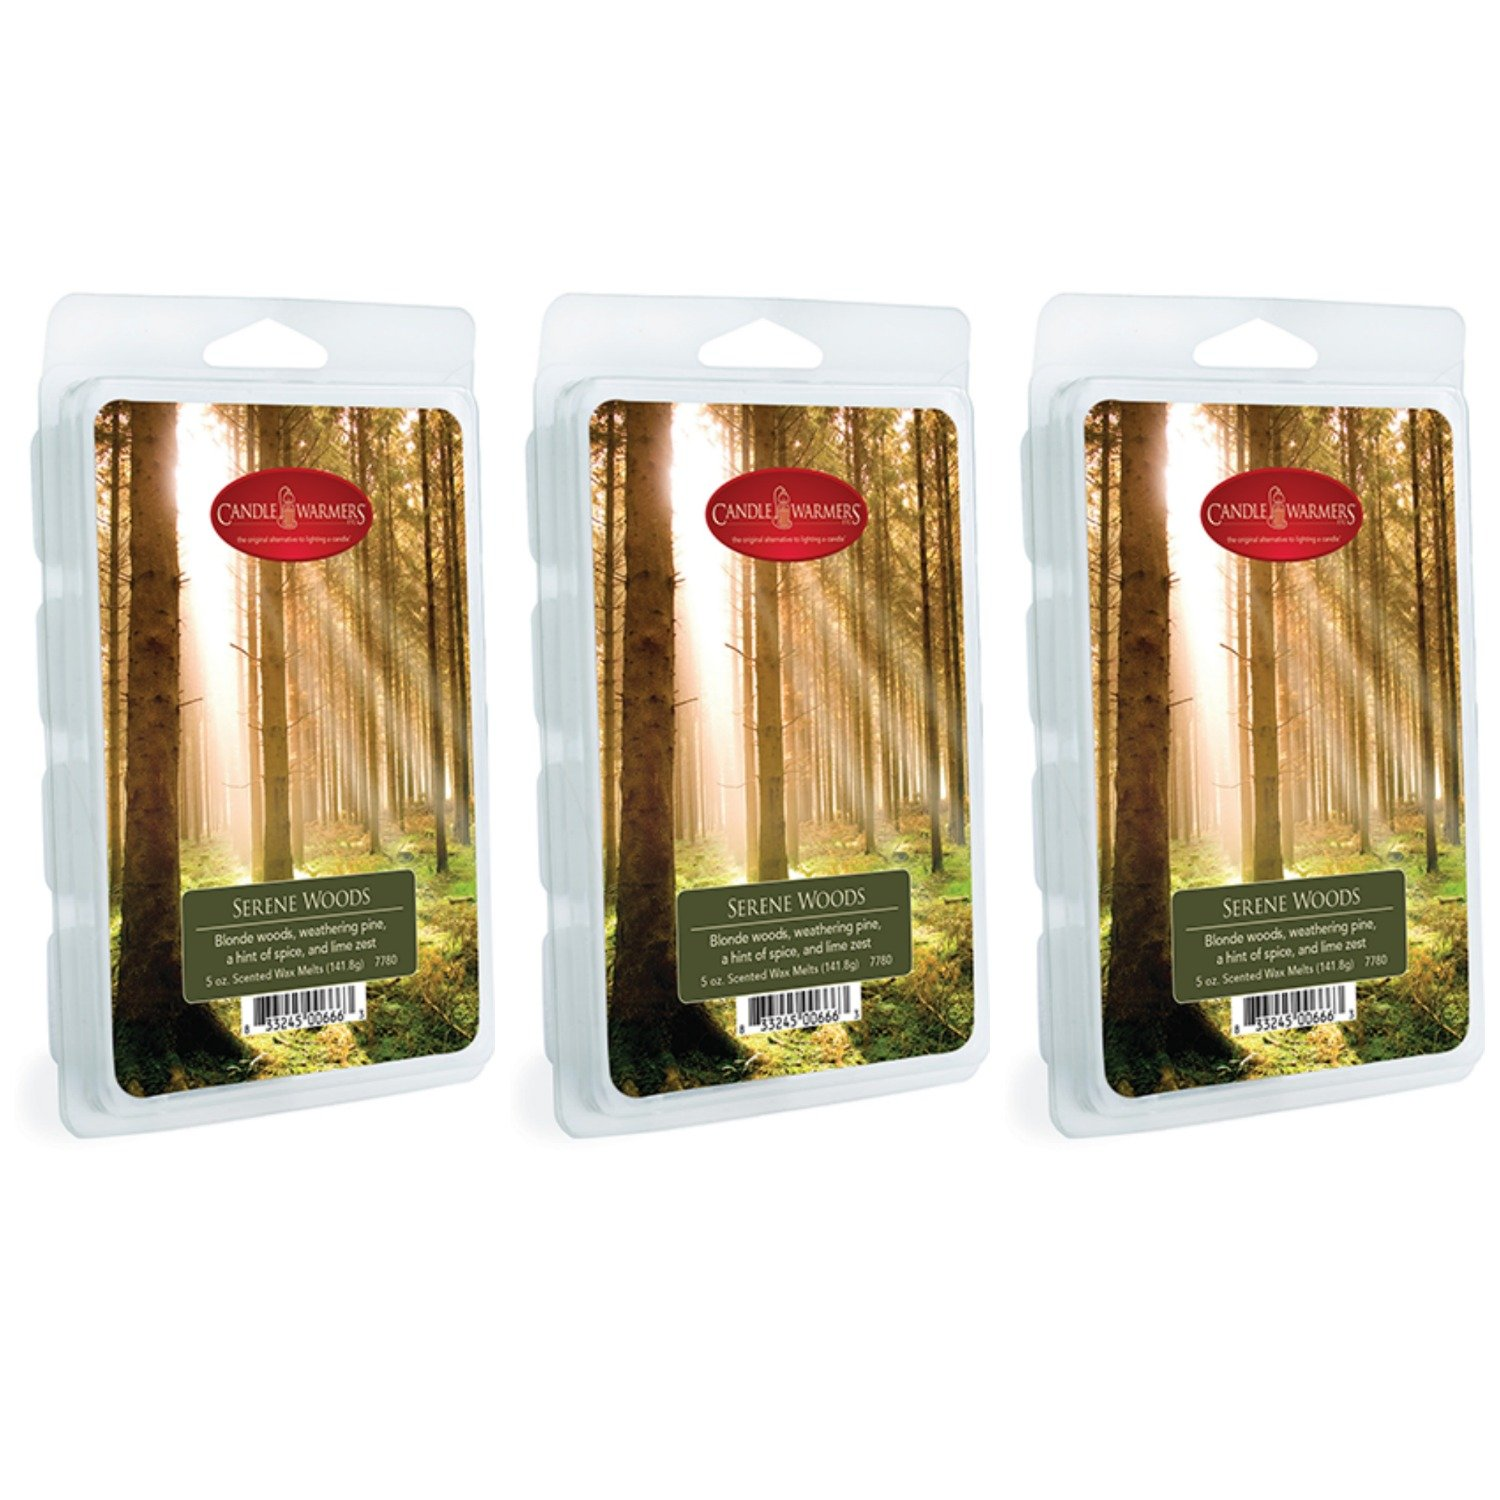 Candle Warmers Etc. 5 oz Wax Melt 3-Pack, Serene Woods